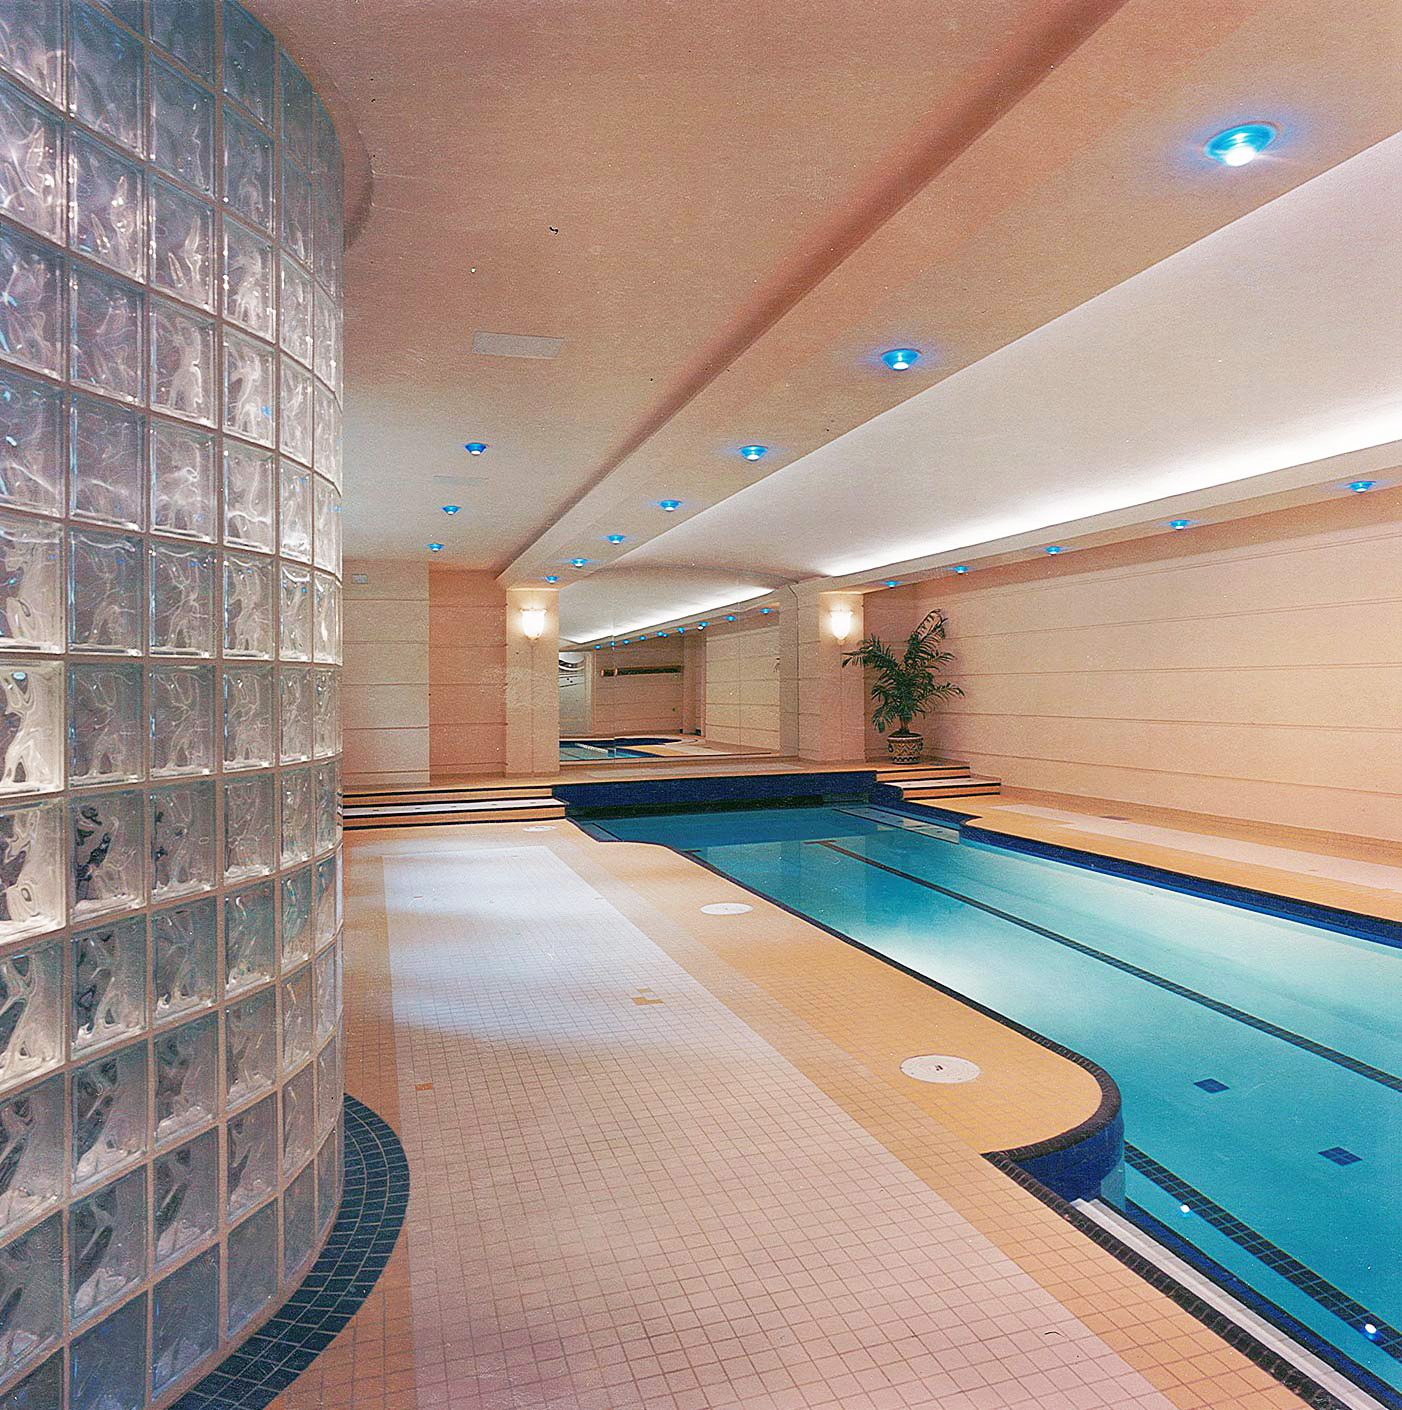 35-interiordesign-modern-MakowArchitects-015-pool